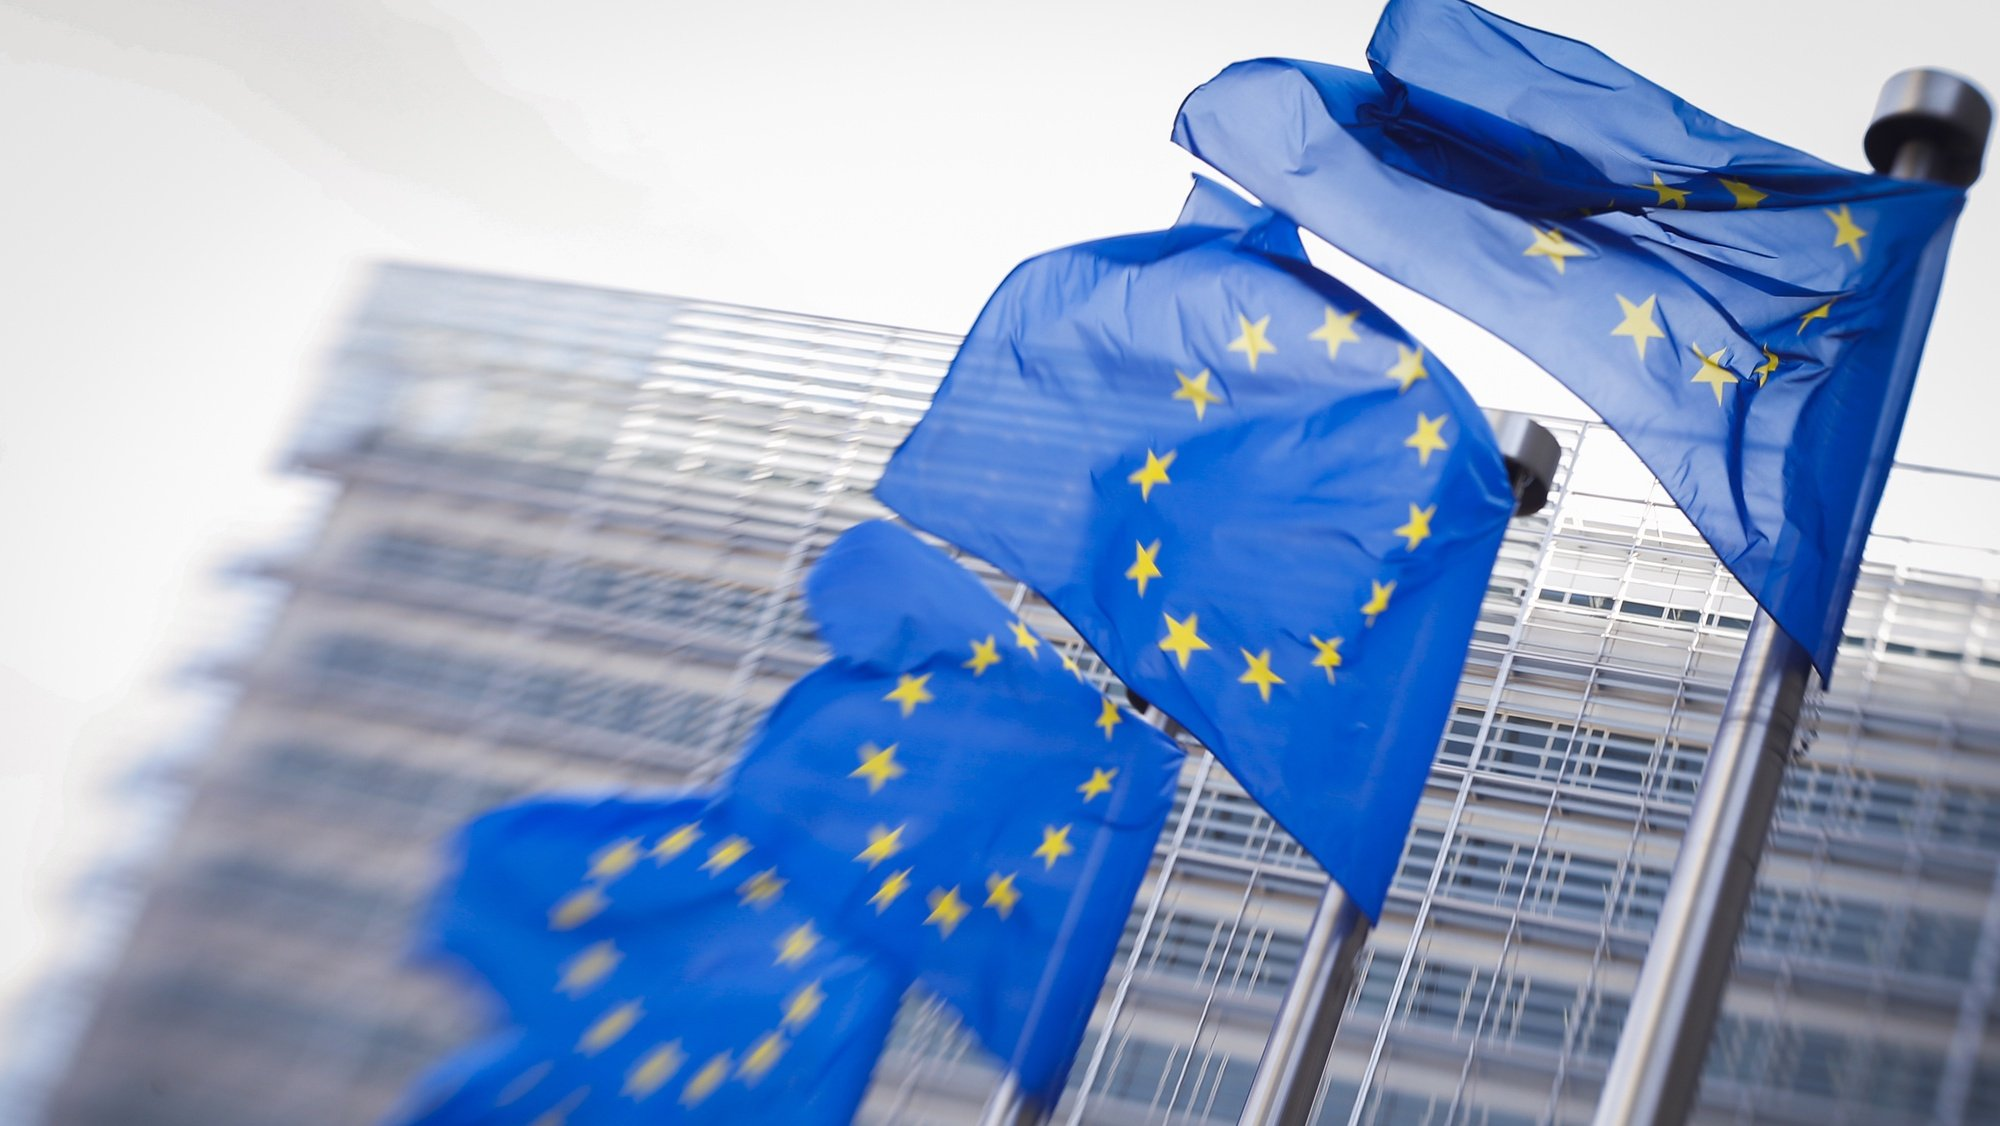 epa07239707 (FILE) - European flags in front of European commission headquarters in Brussels, Belgium, 26 June 2018 (reissued 19 December 2018). According to a report by the New York Times, hackers have allegedly intercepted communications of European Union diplomatic staff for several years.  EPA/OLIVIER HOSLET